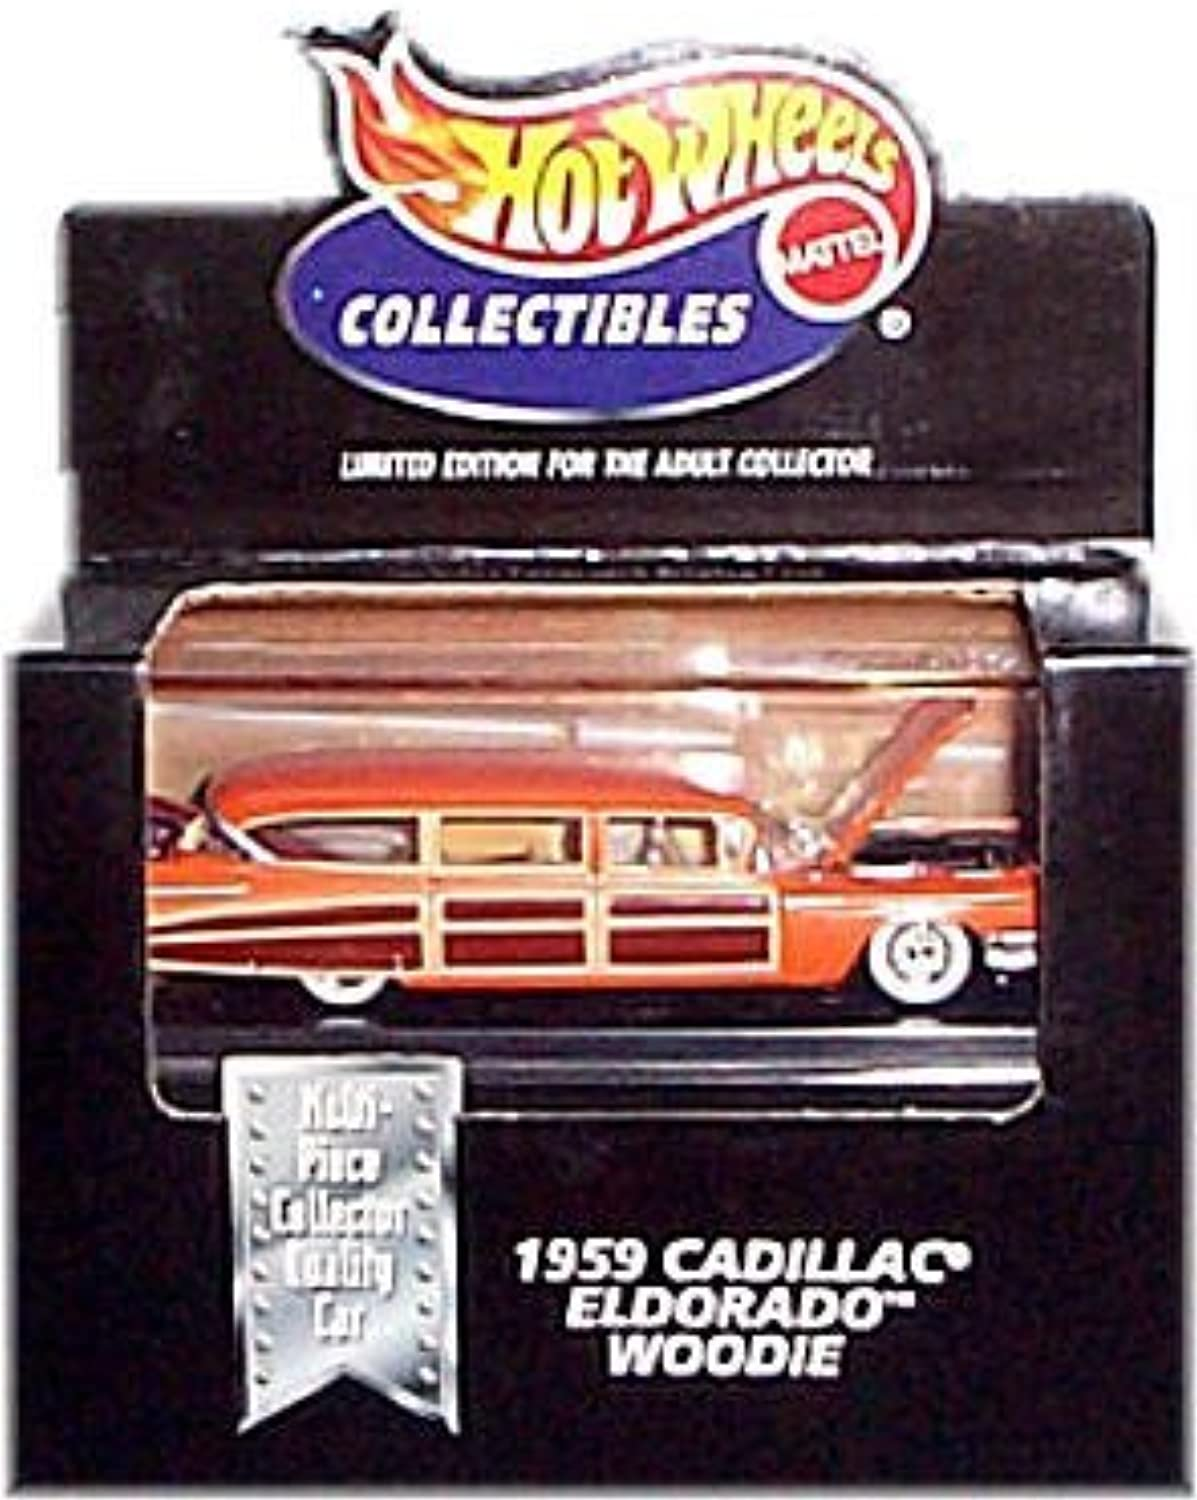 Hot Wheels Collectibles 1959 CADILLAC ELDORADO WOODIE Limited Edition for the Adult Collector 1 64 Scale Diecast Car